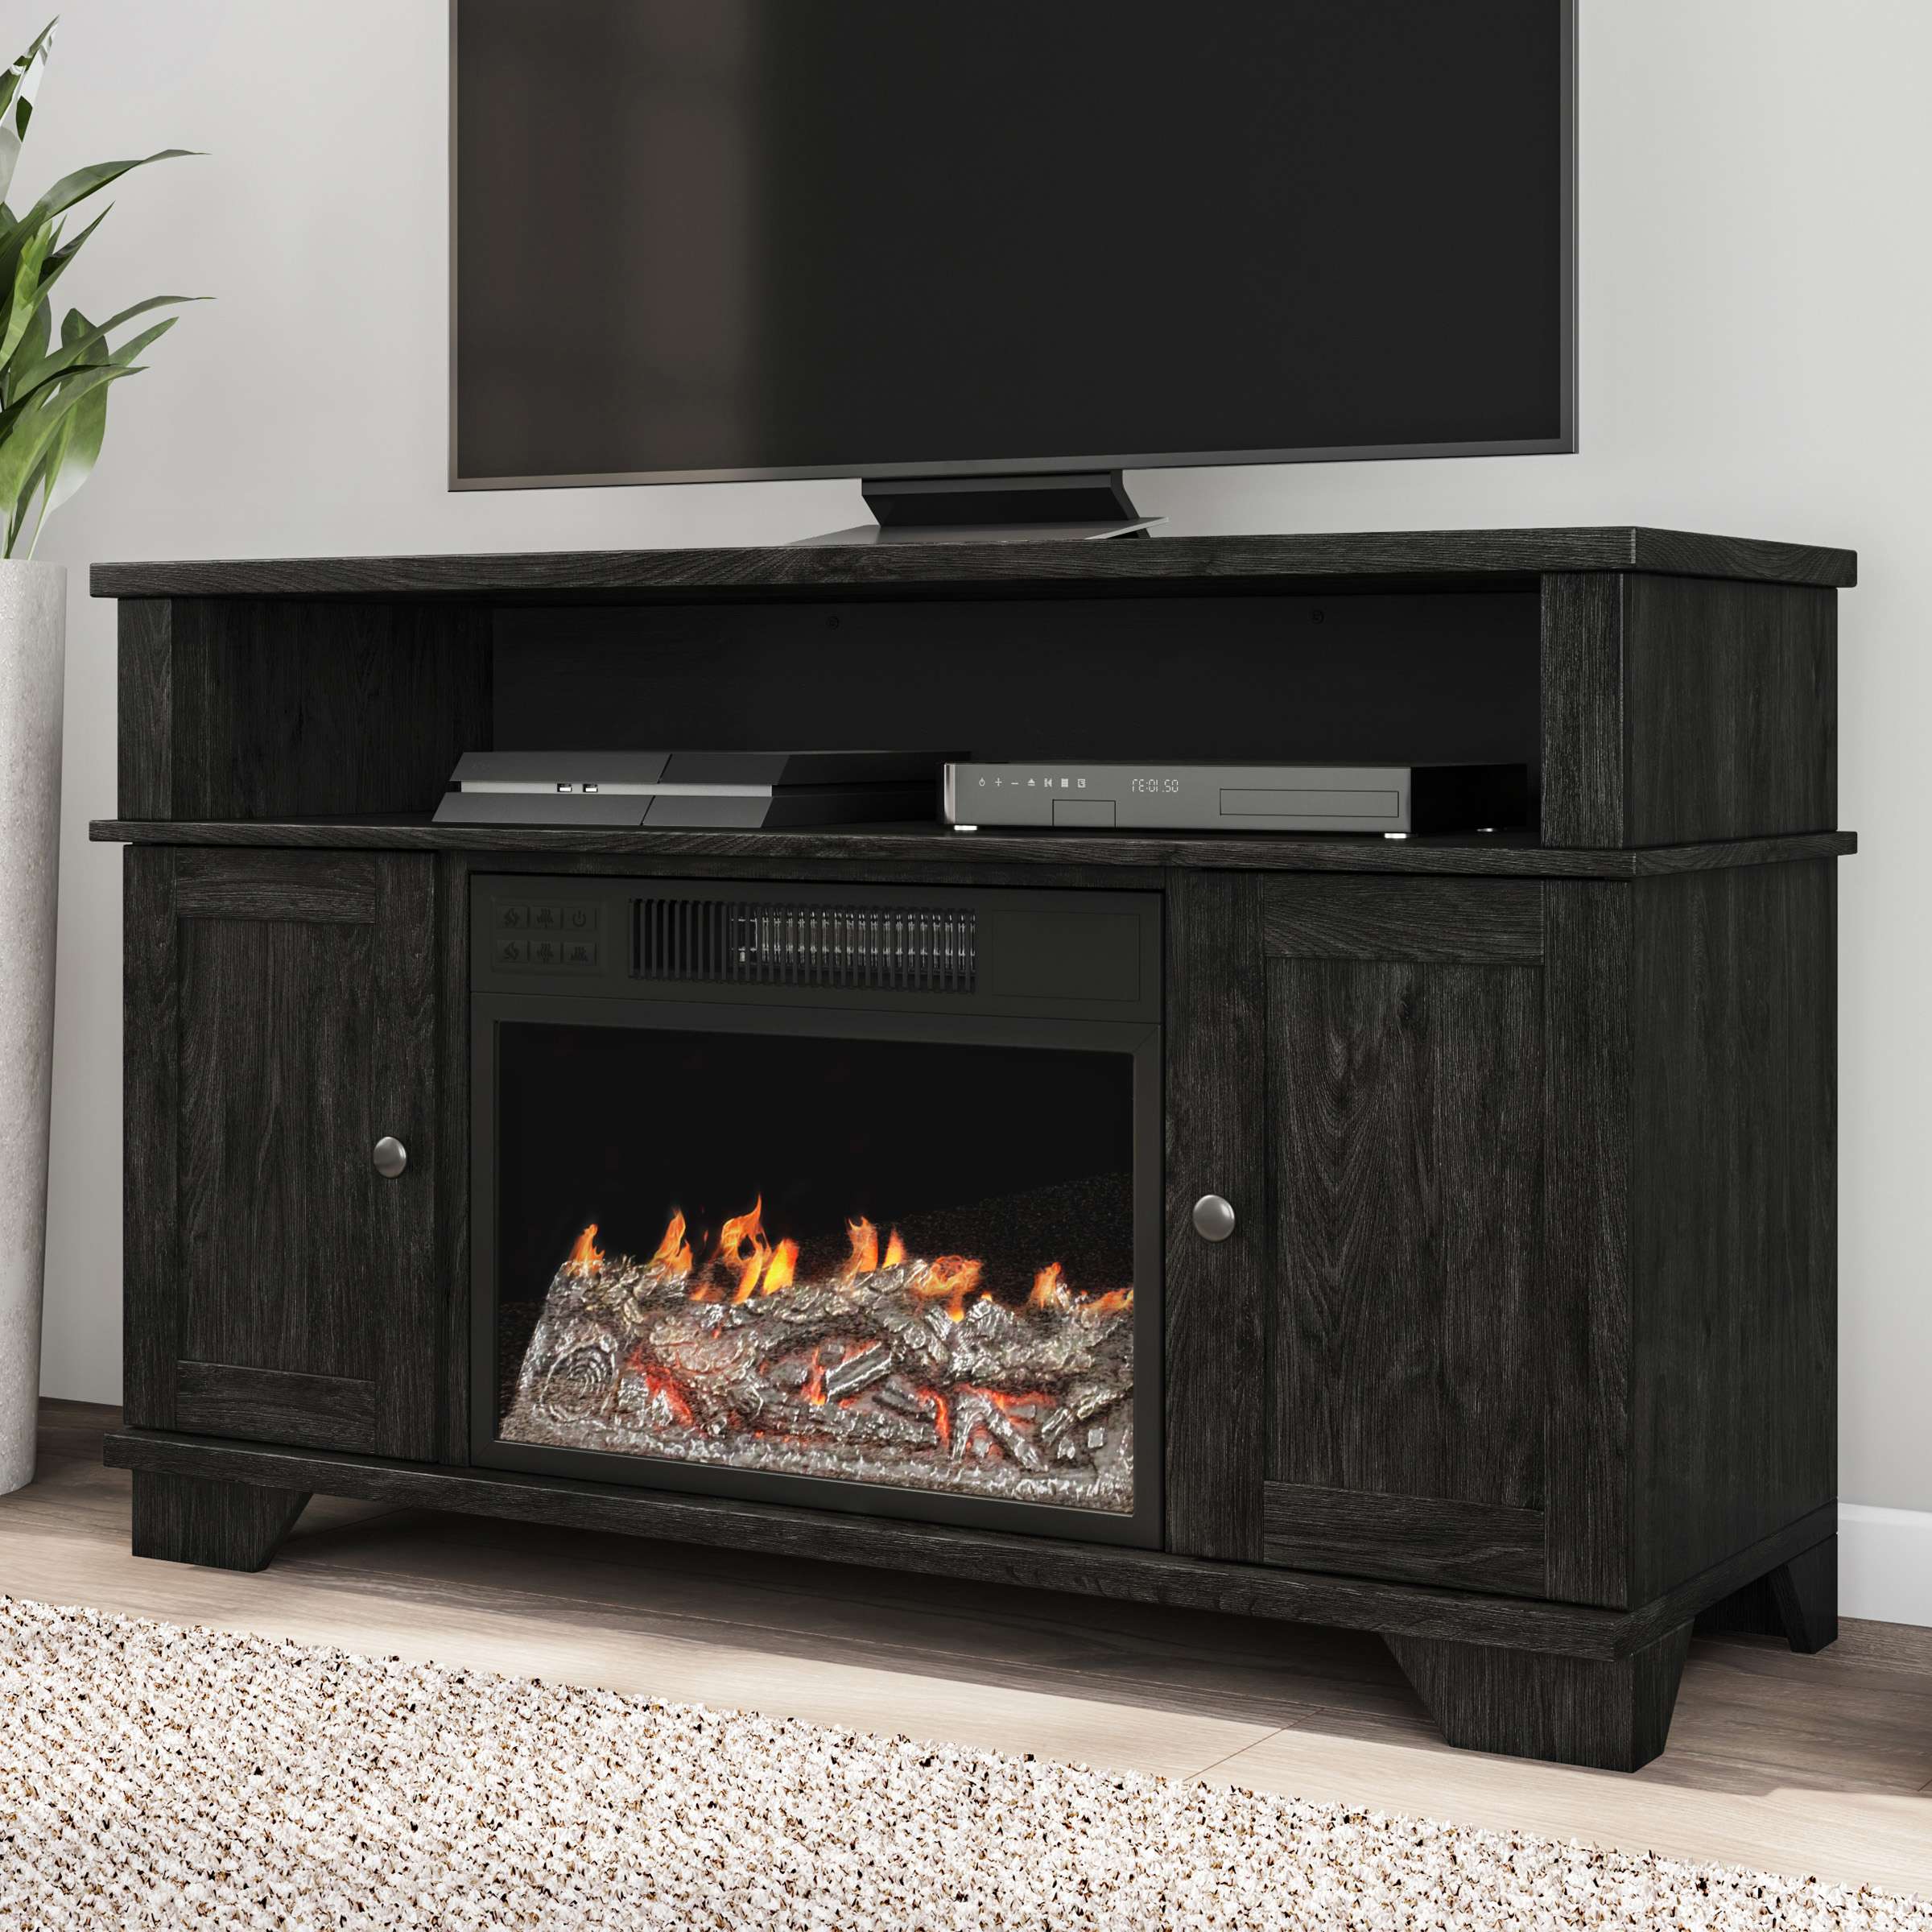 """Electric Fireplace Tv Stand  For Tvs Up To 47"""", Media In Tv Stands Cabinet Media Console Shelves 2 Drawers With Led Light (View 17 of 20)"""